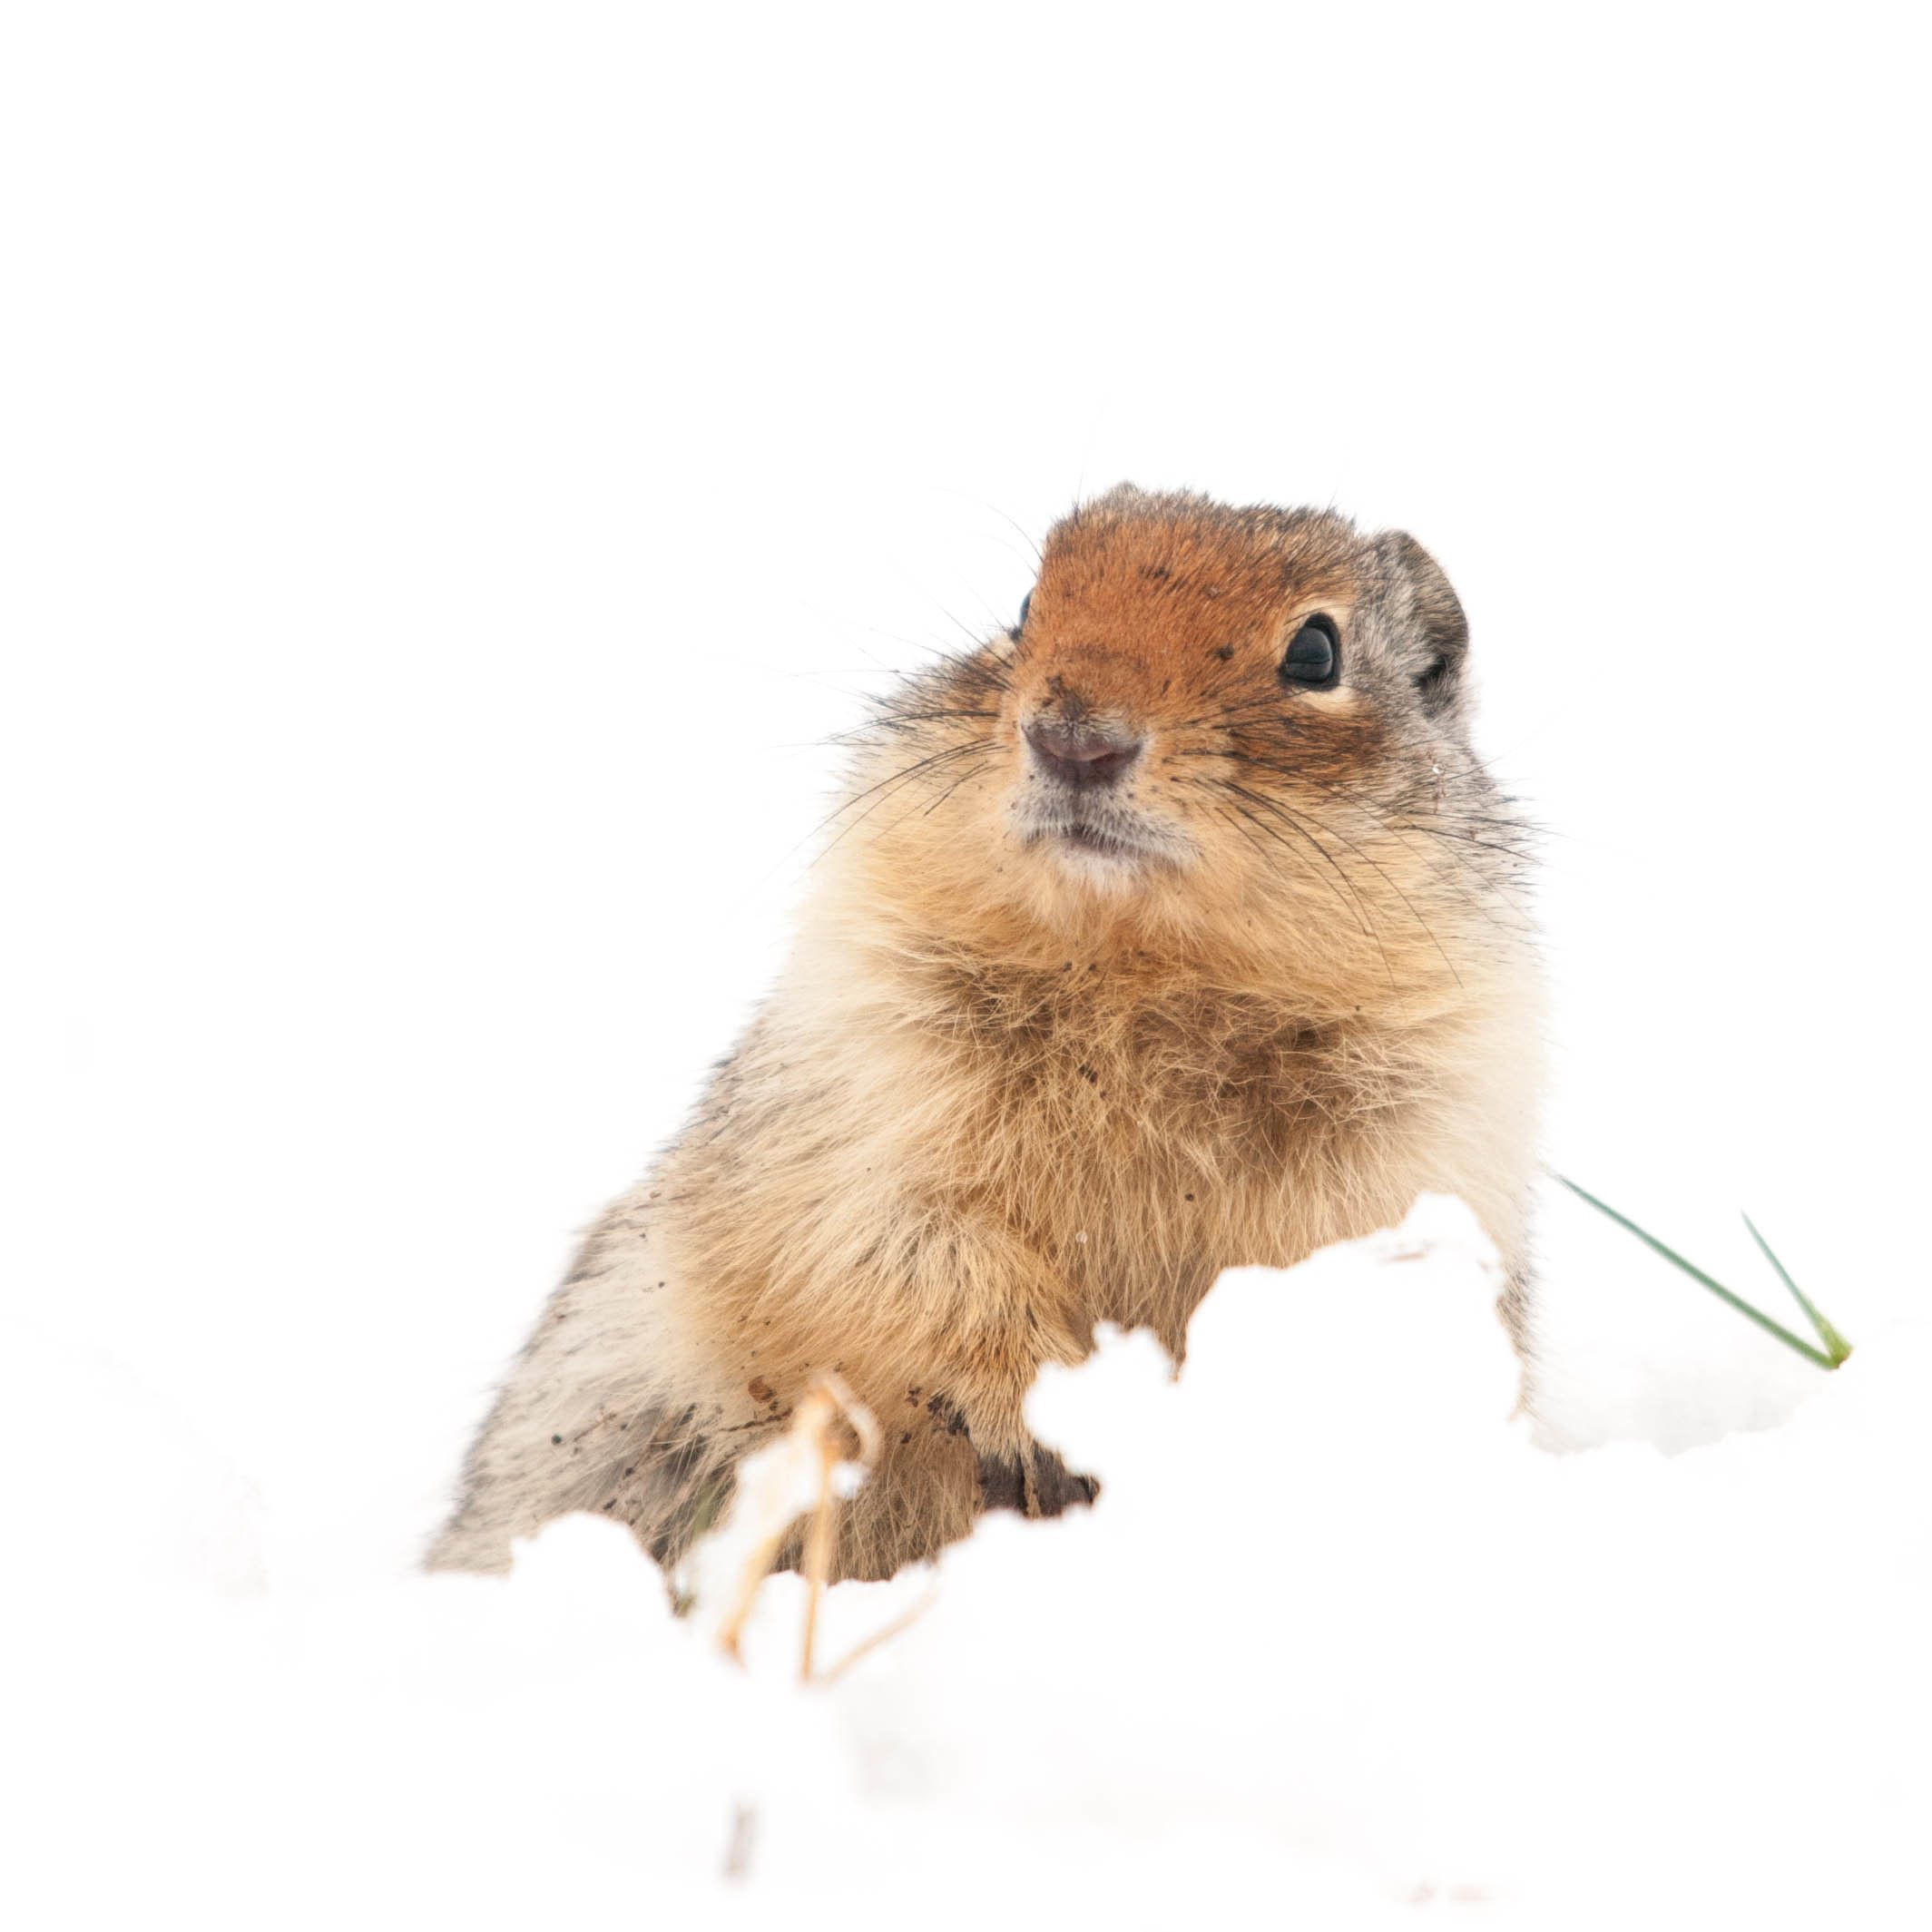 columbian ground squirrel encounters spring